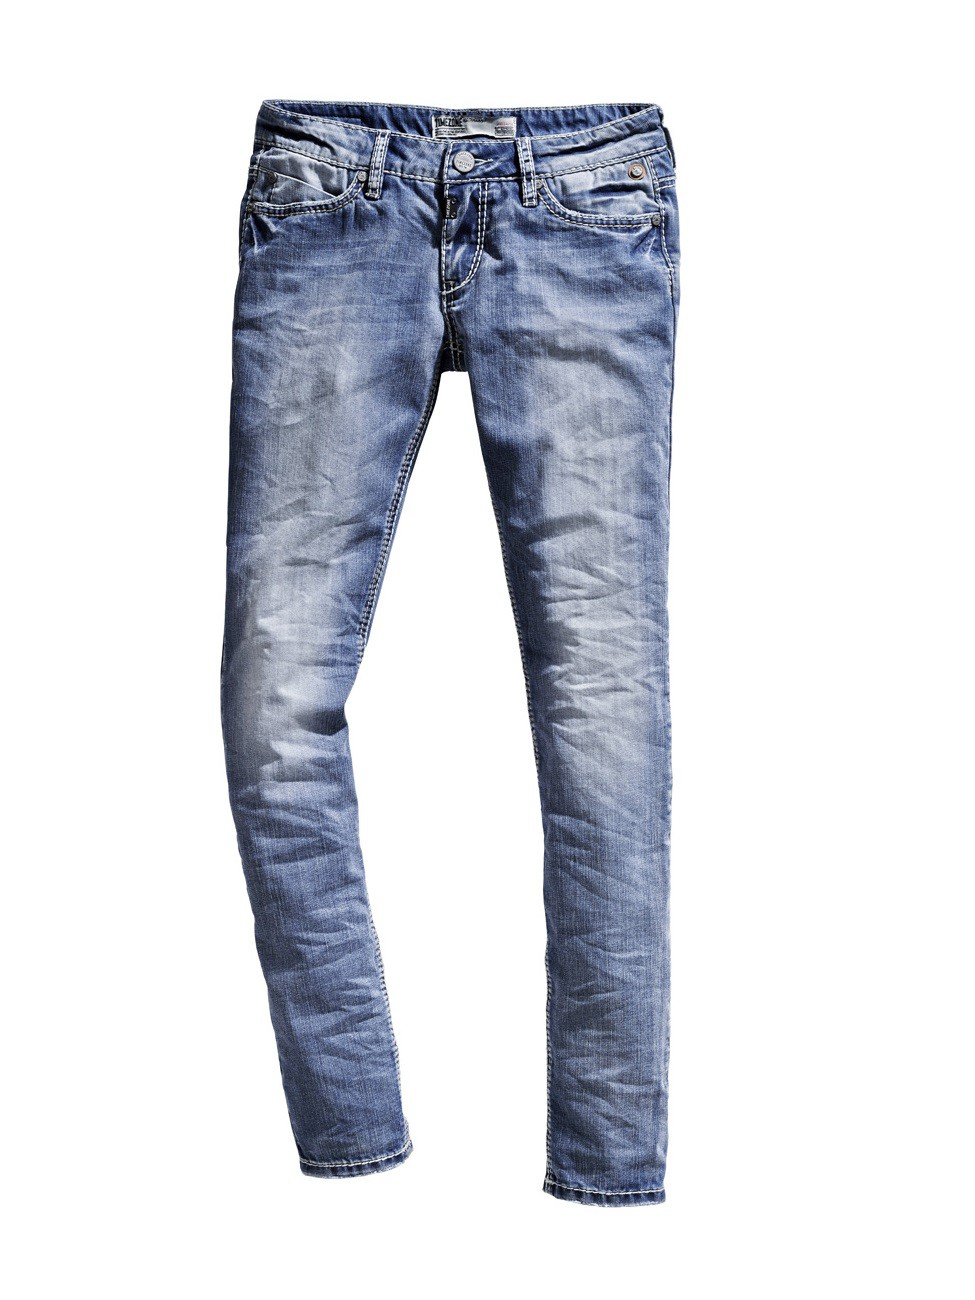 Timezone Damen Jeans NiniTZ - Slim Fit - Cool Bleach Wash